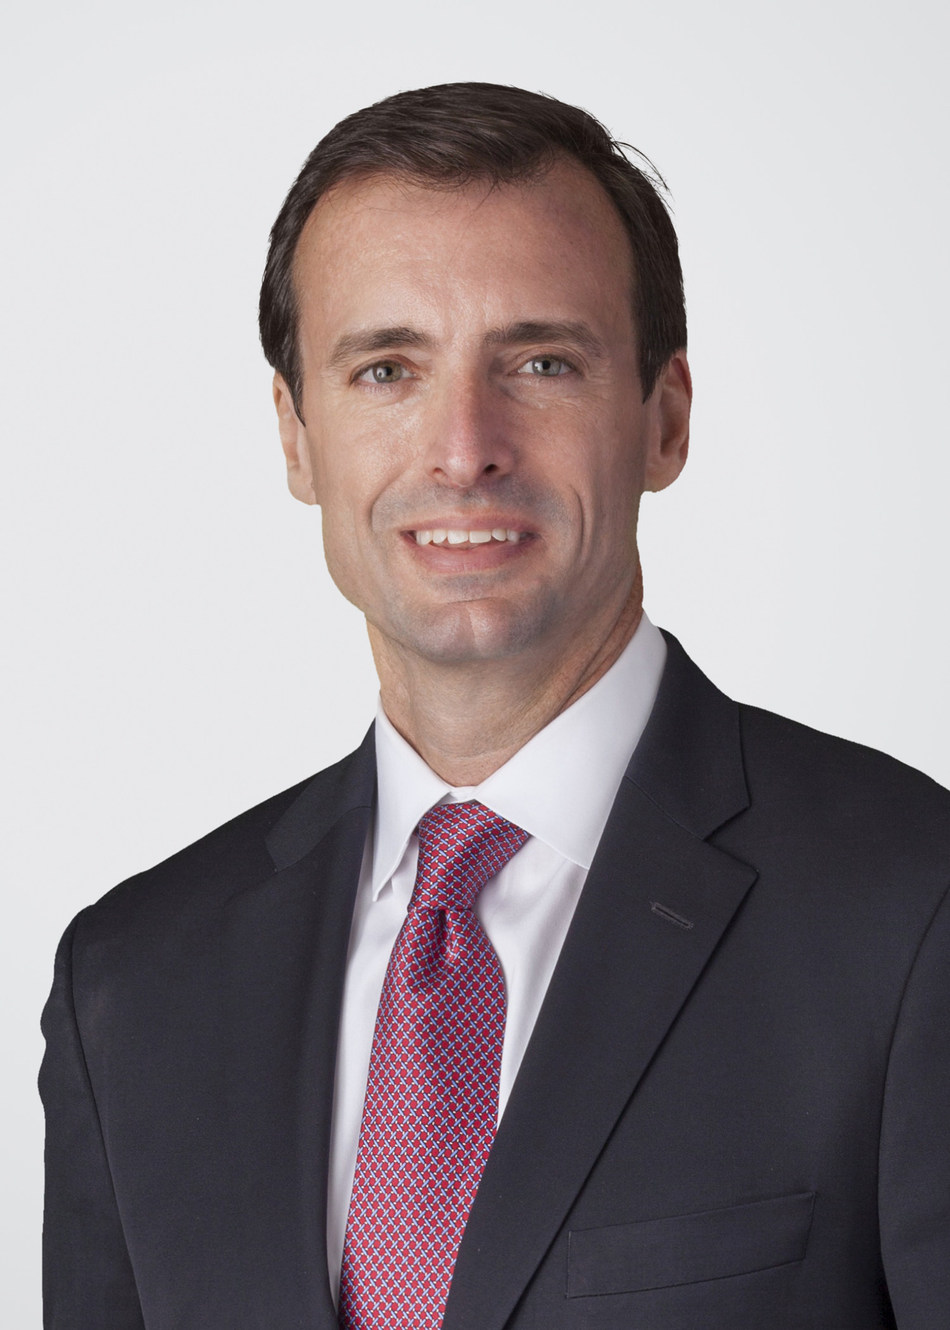 U.S. Attorney Wifredo A. Ferrer will join Holland & Knight as a partner in its Miami office.